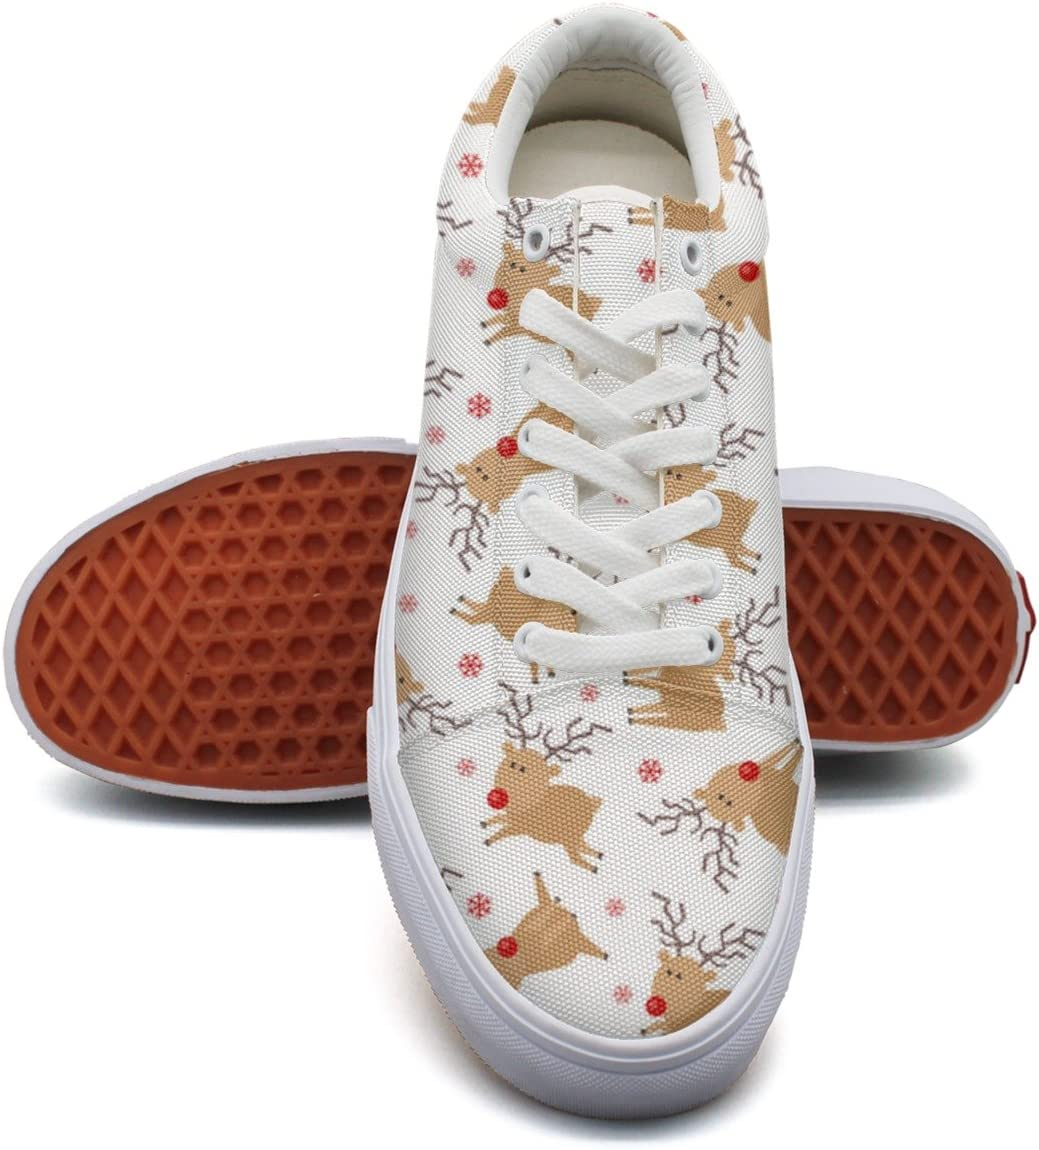 Milner Gilese Tiny Christmas Holiday Deer Print Sneaker Flat Canvas Shoes For Mens Stylish